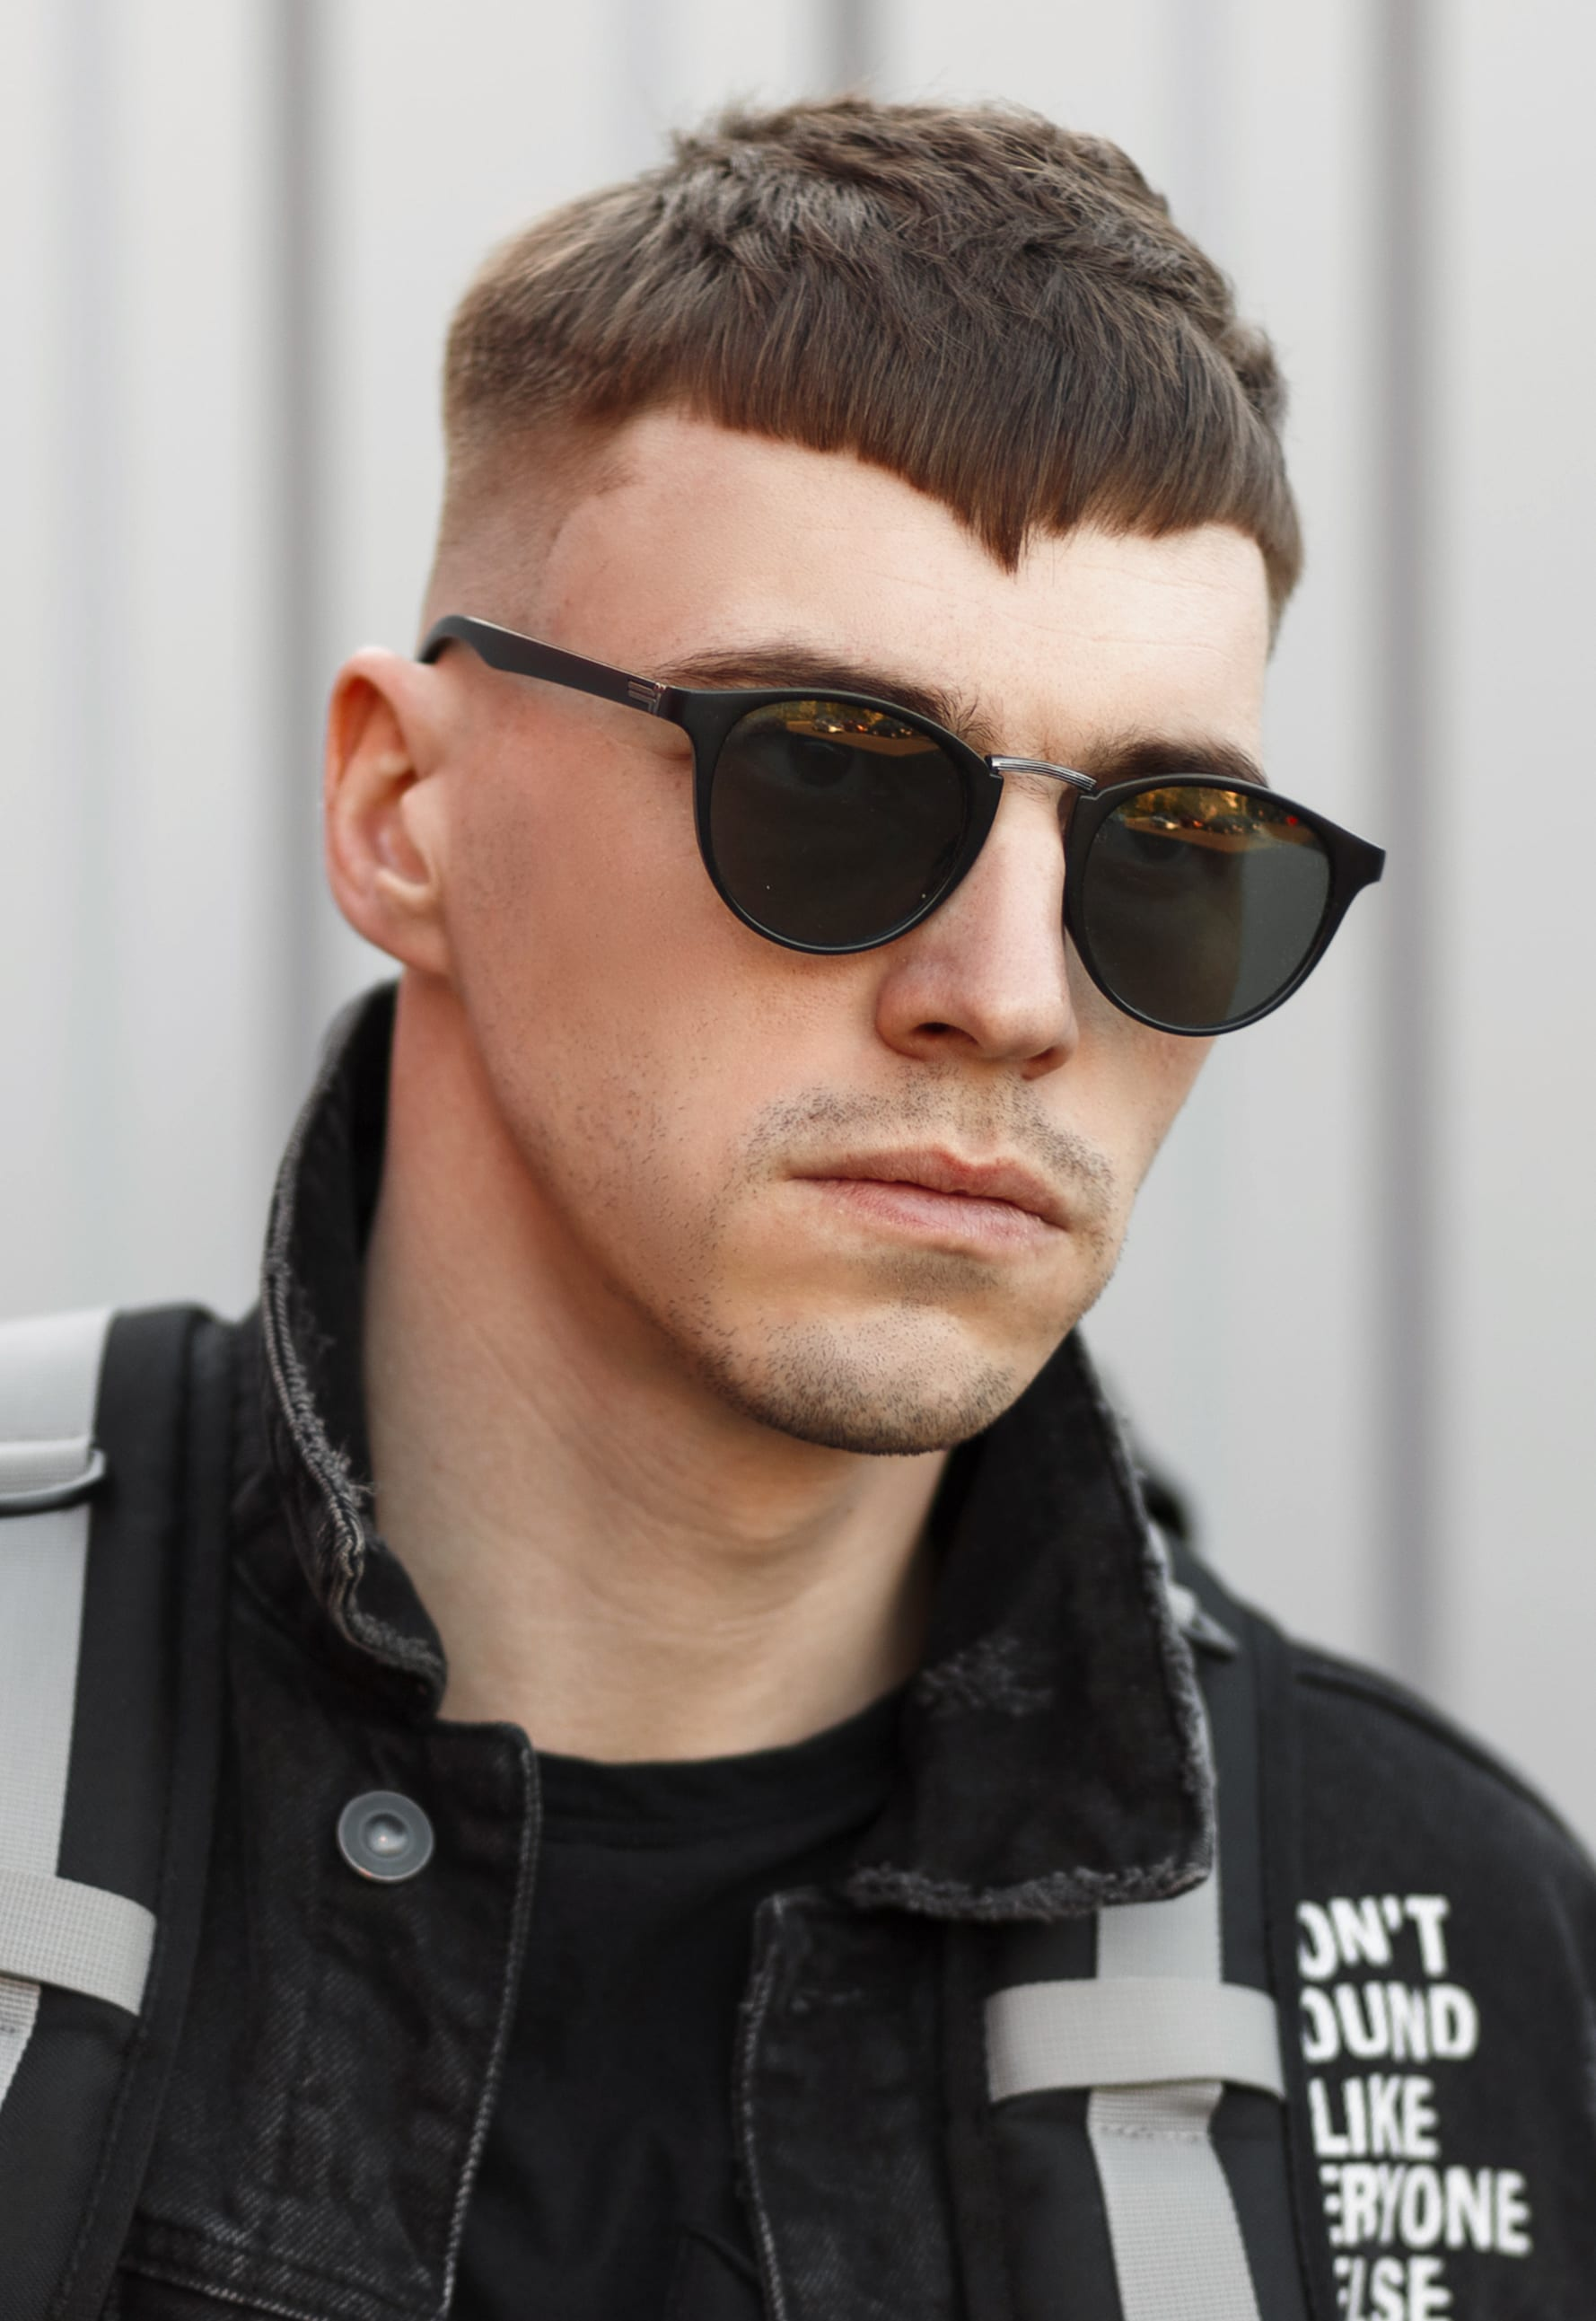 Angular Fringe with Undercut